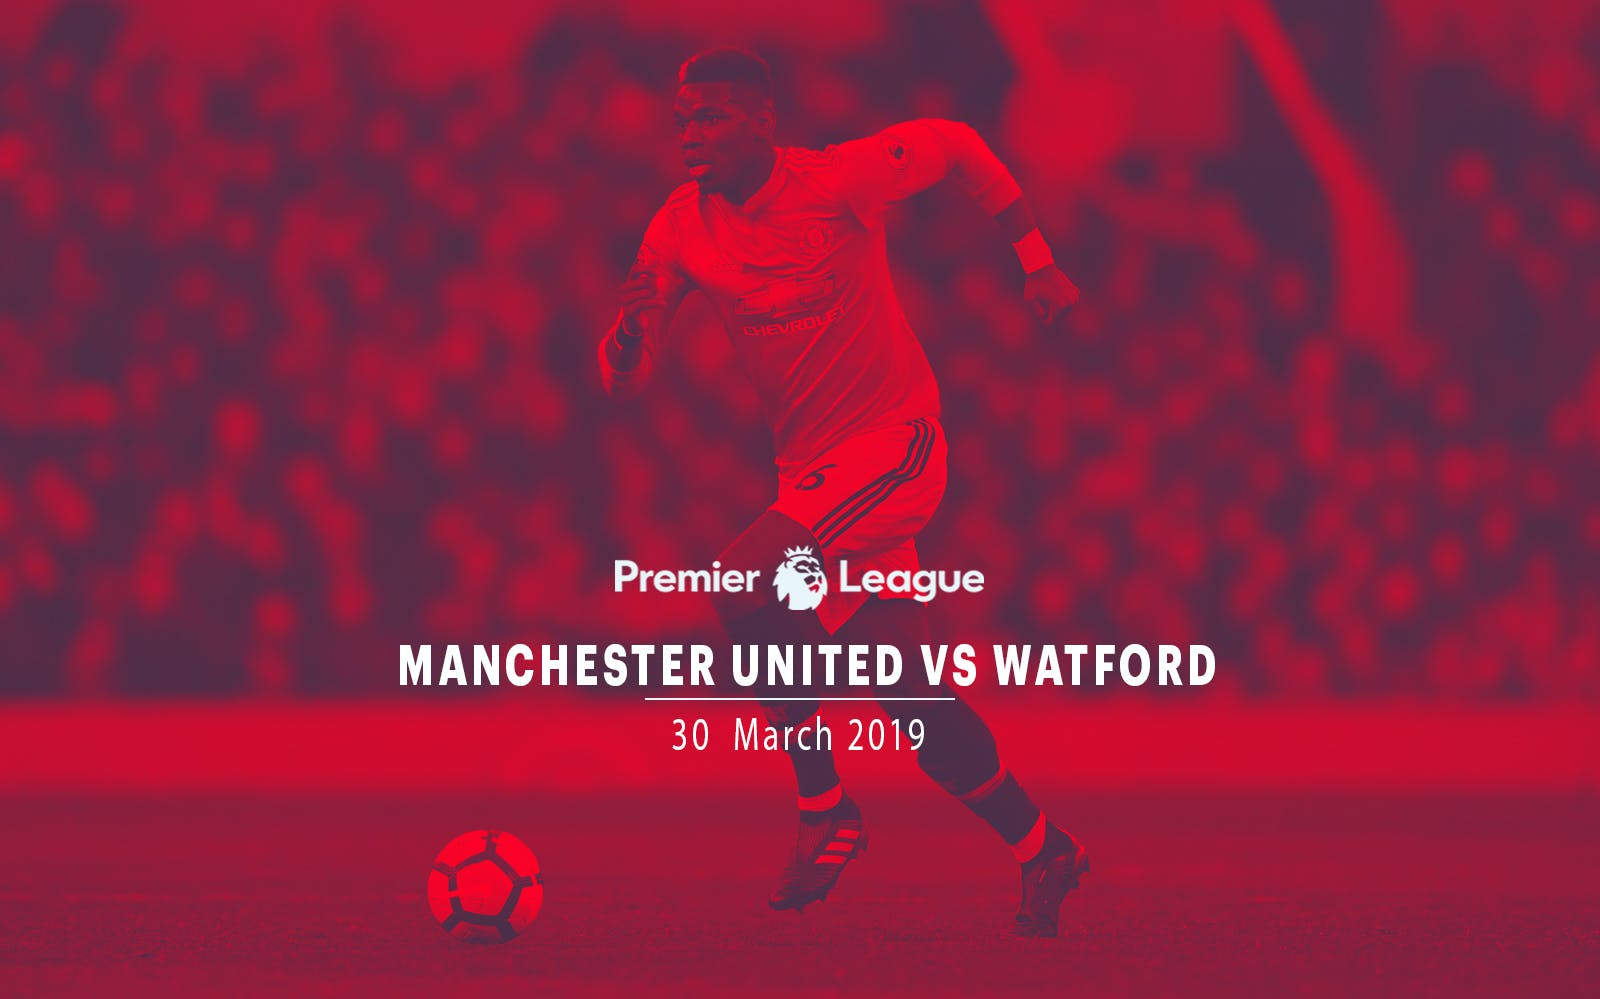 manchester united vs watford -30th mar'19-1